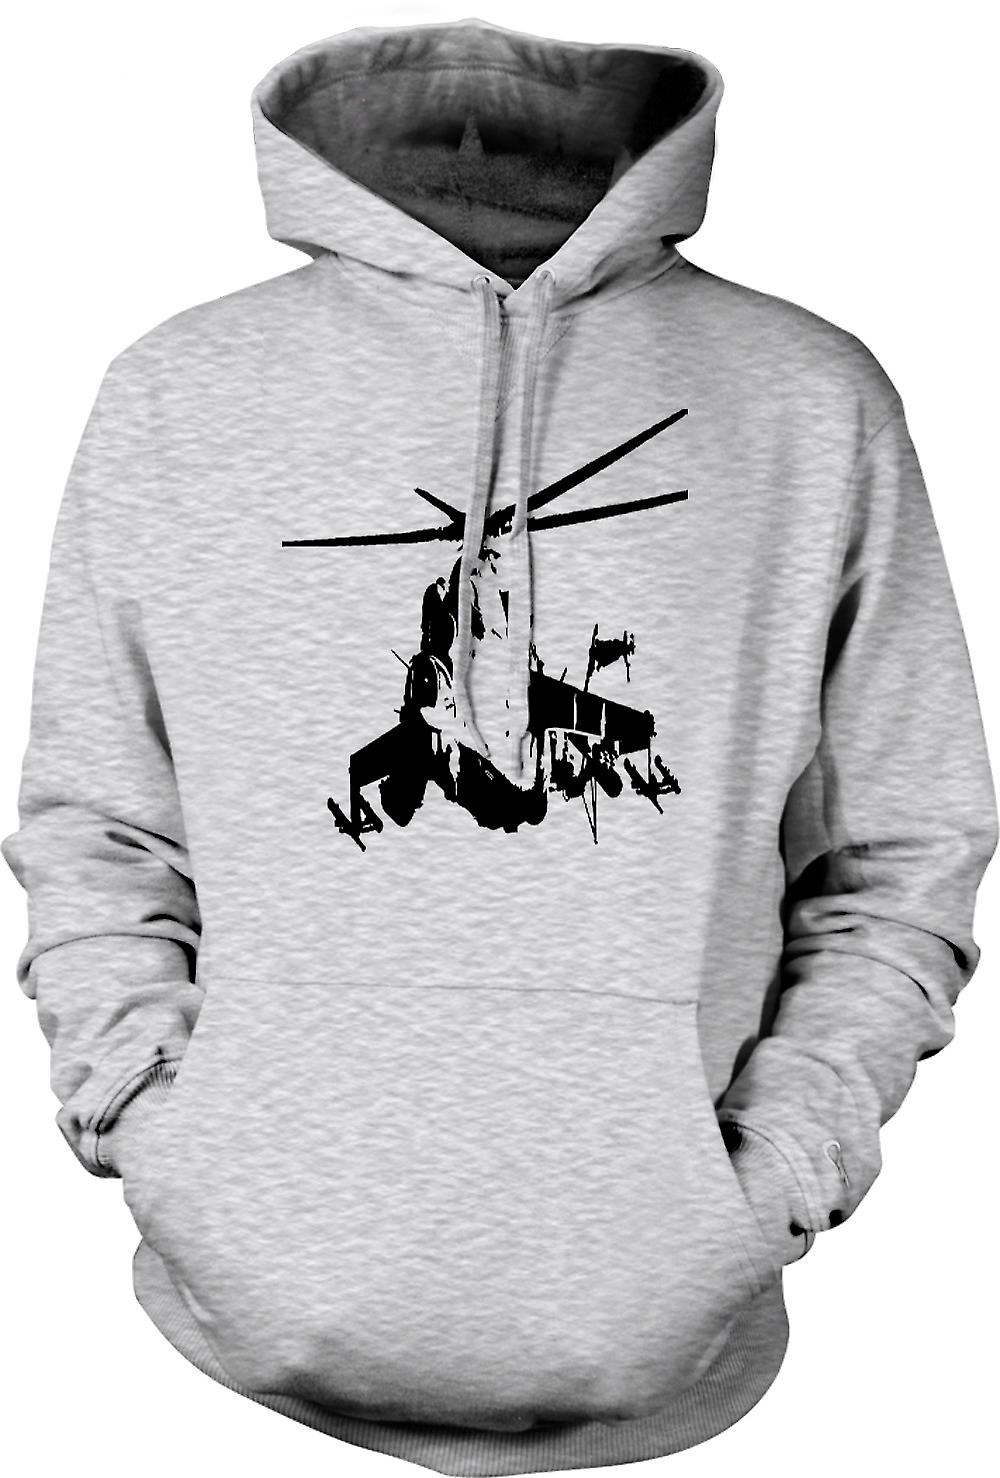 Mens Hoodie - MI-24 HIND Attack Helicopter